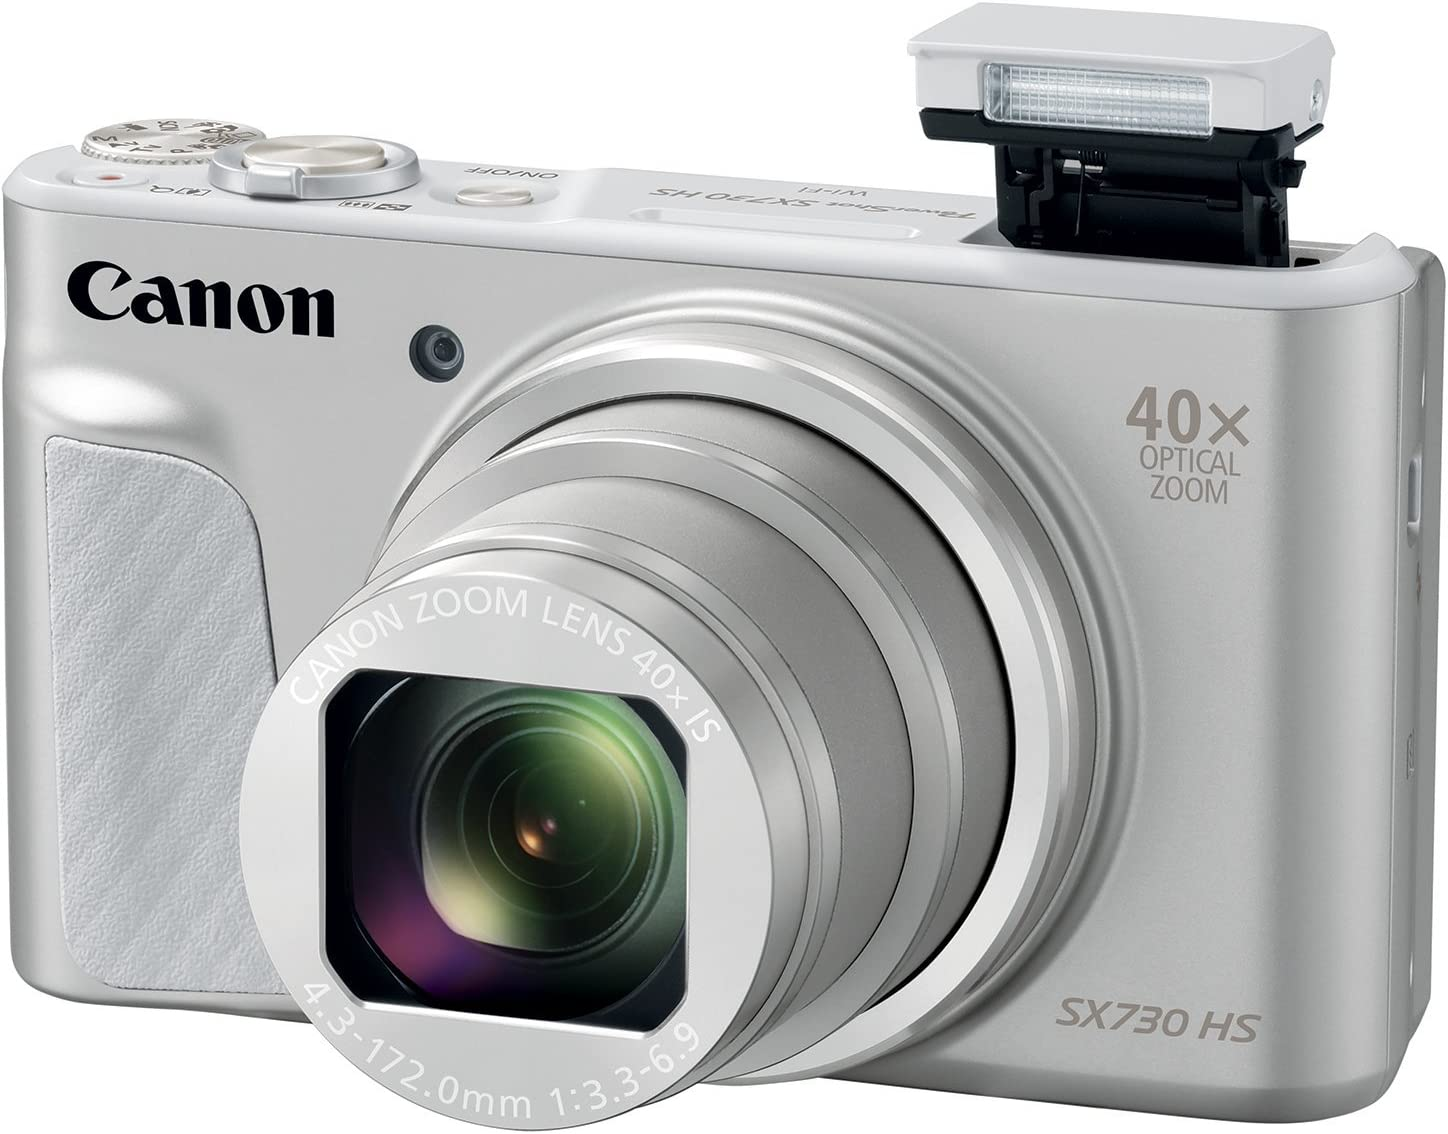 Canon PowerShot SX730 Digital Camera w/40x Optical Zoom & 3 Inch Tilt LCD - Wi-Fi, NFC, Bluetooth Enabled (Silver) (Renewed)